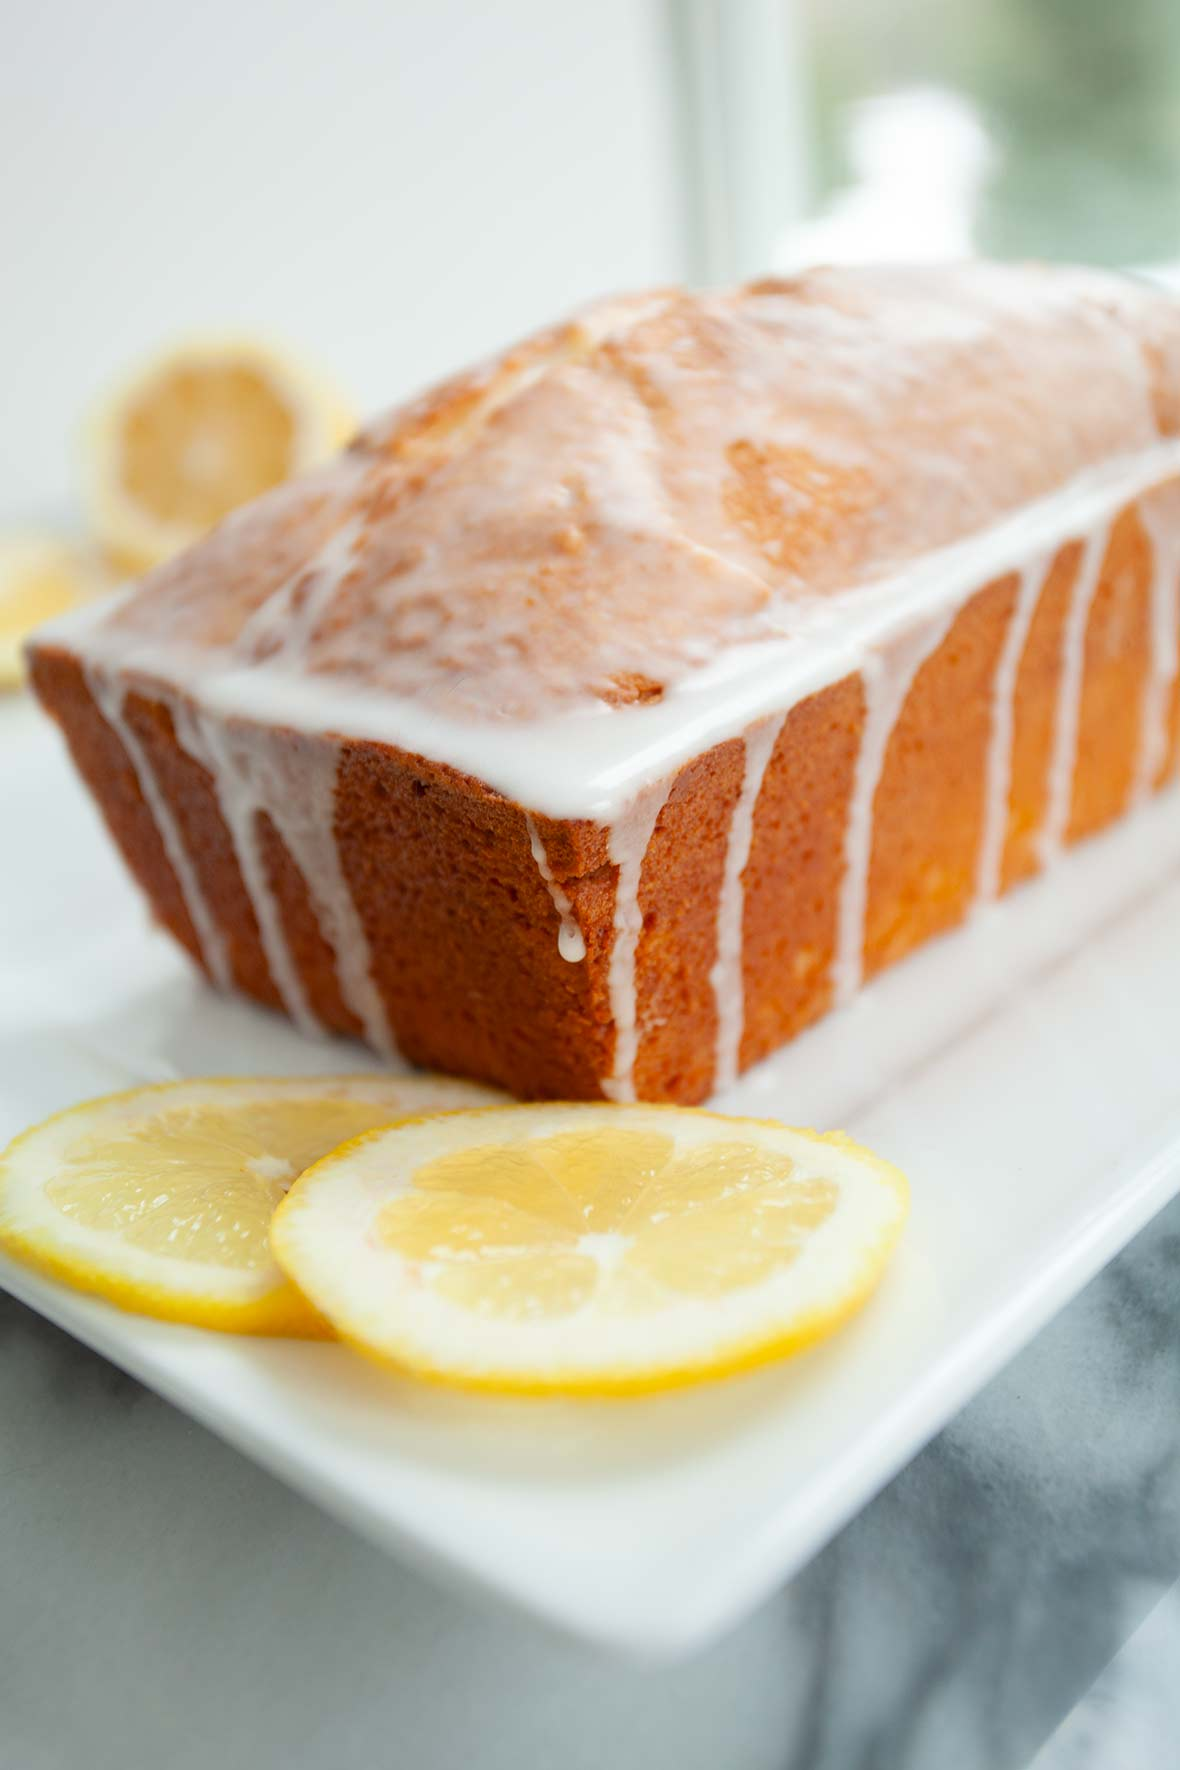 A cream cheese pound cake with lemons